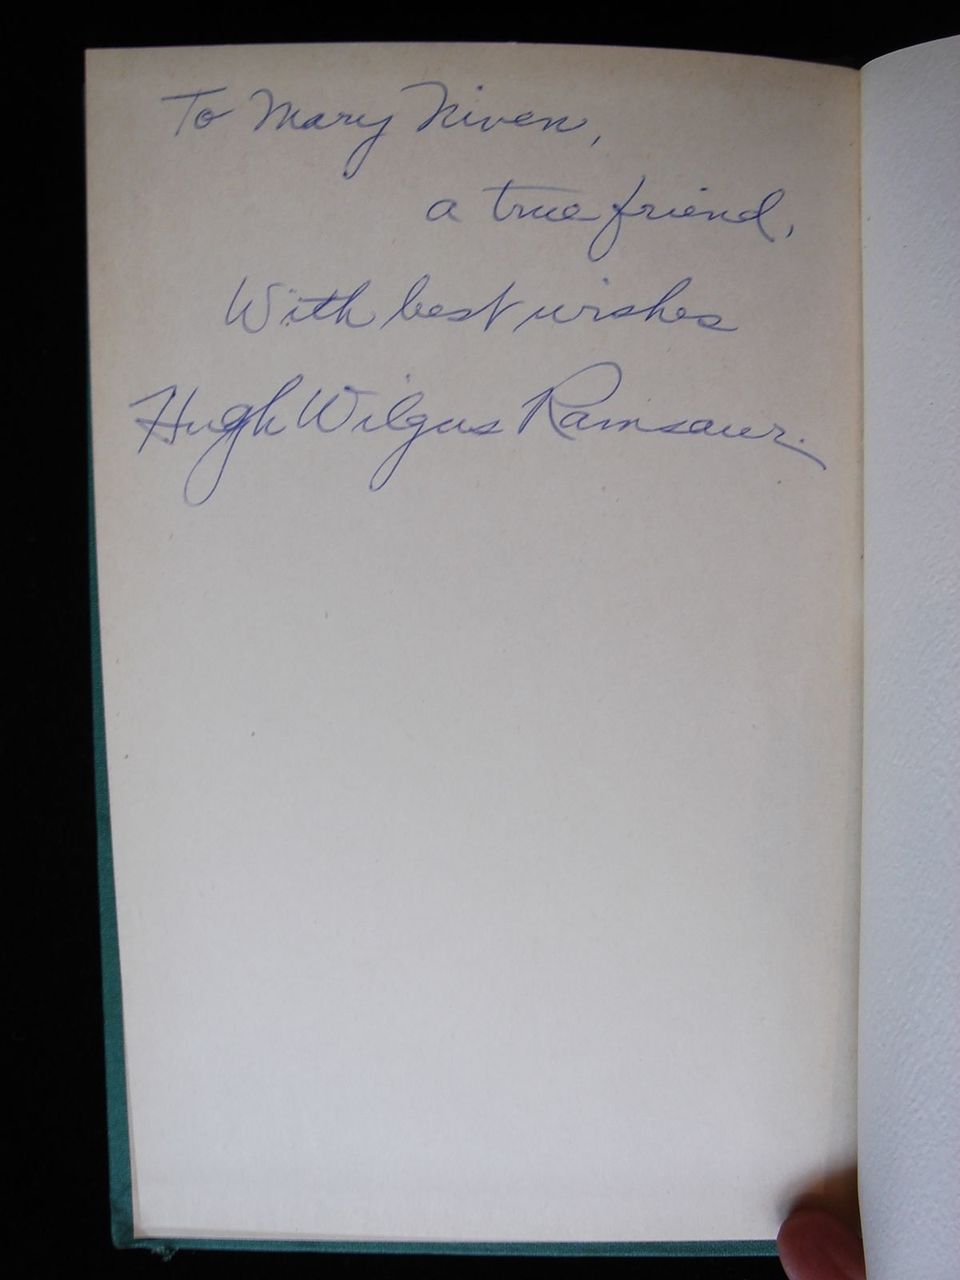 ALTARS TO THE MOON, by Hugh Wilgus Ramsaur - 1946 [SIGNED]